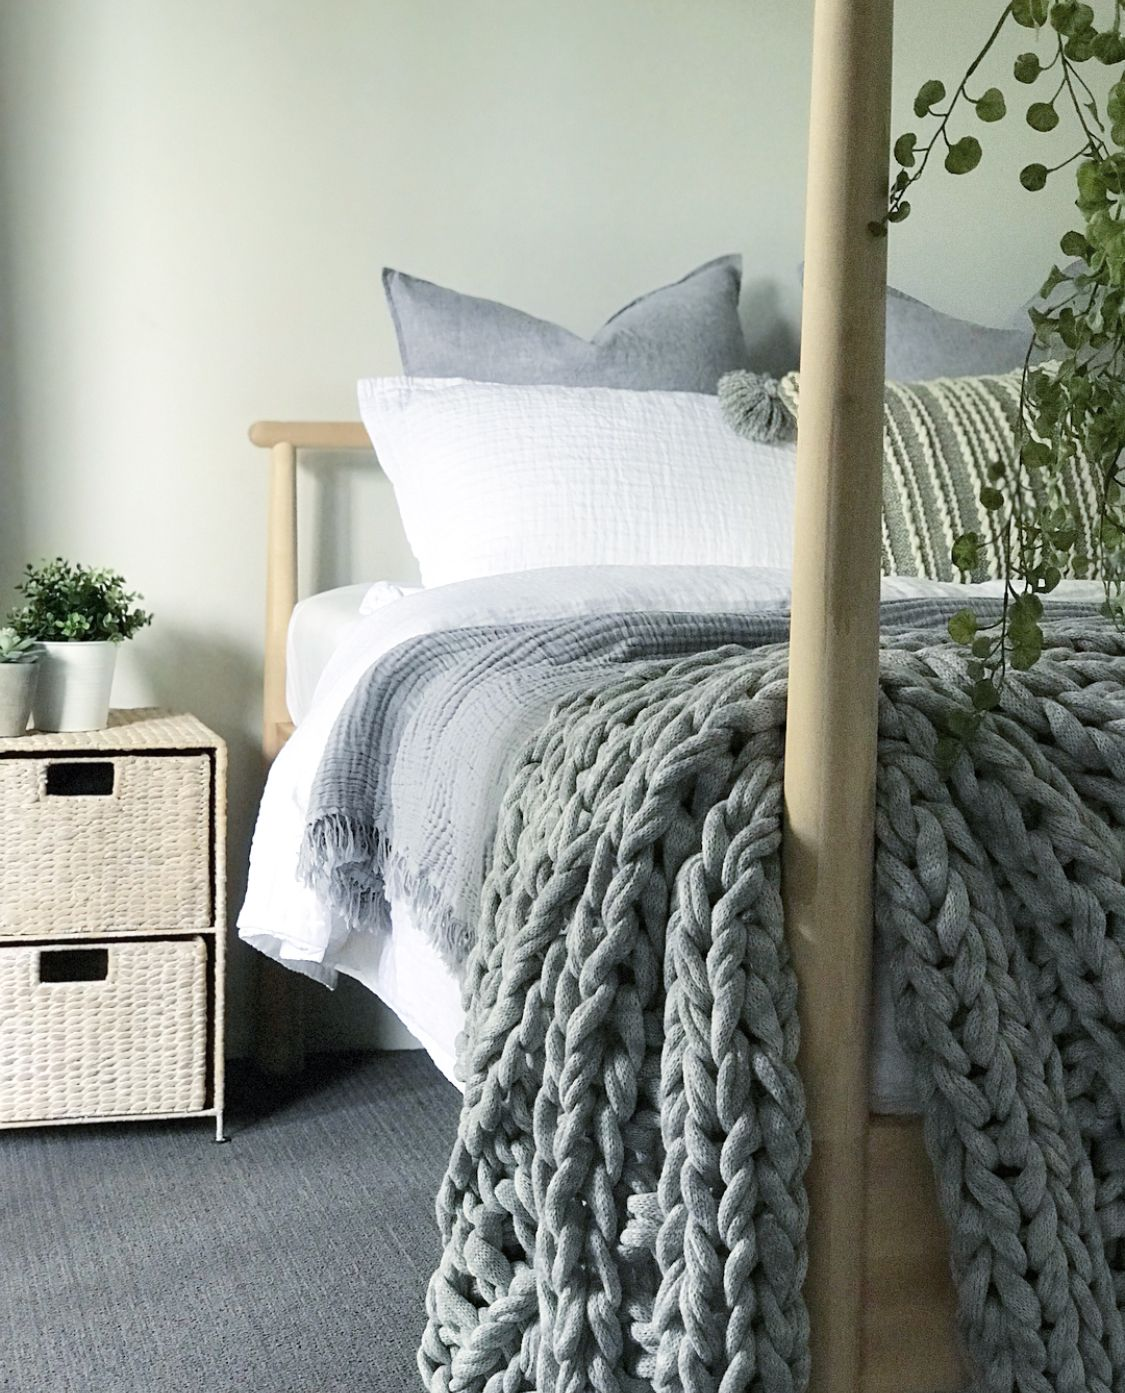 Ikea GJÖRA bed. Adairs bed linen. | House hold style for my husband ...